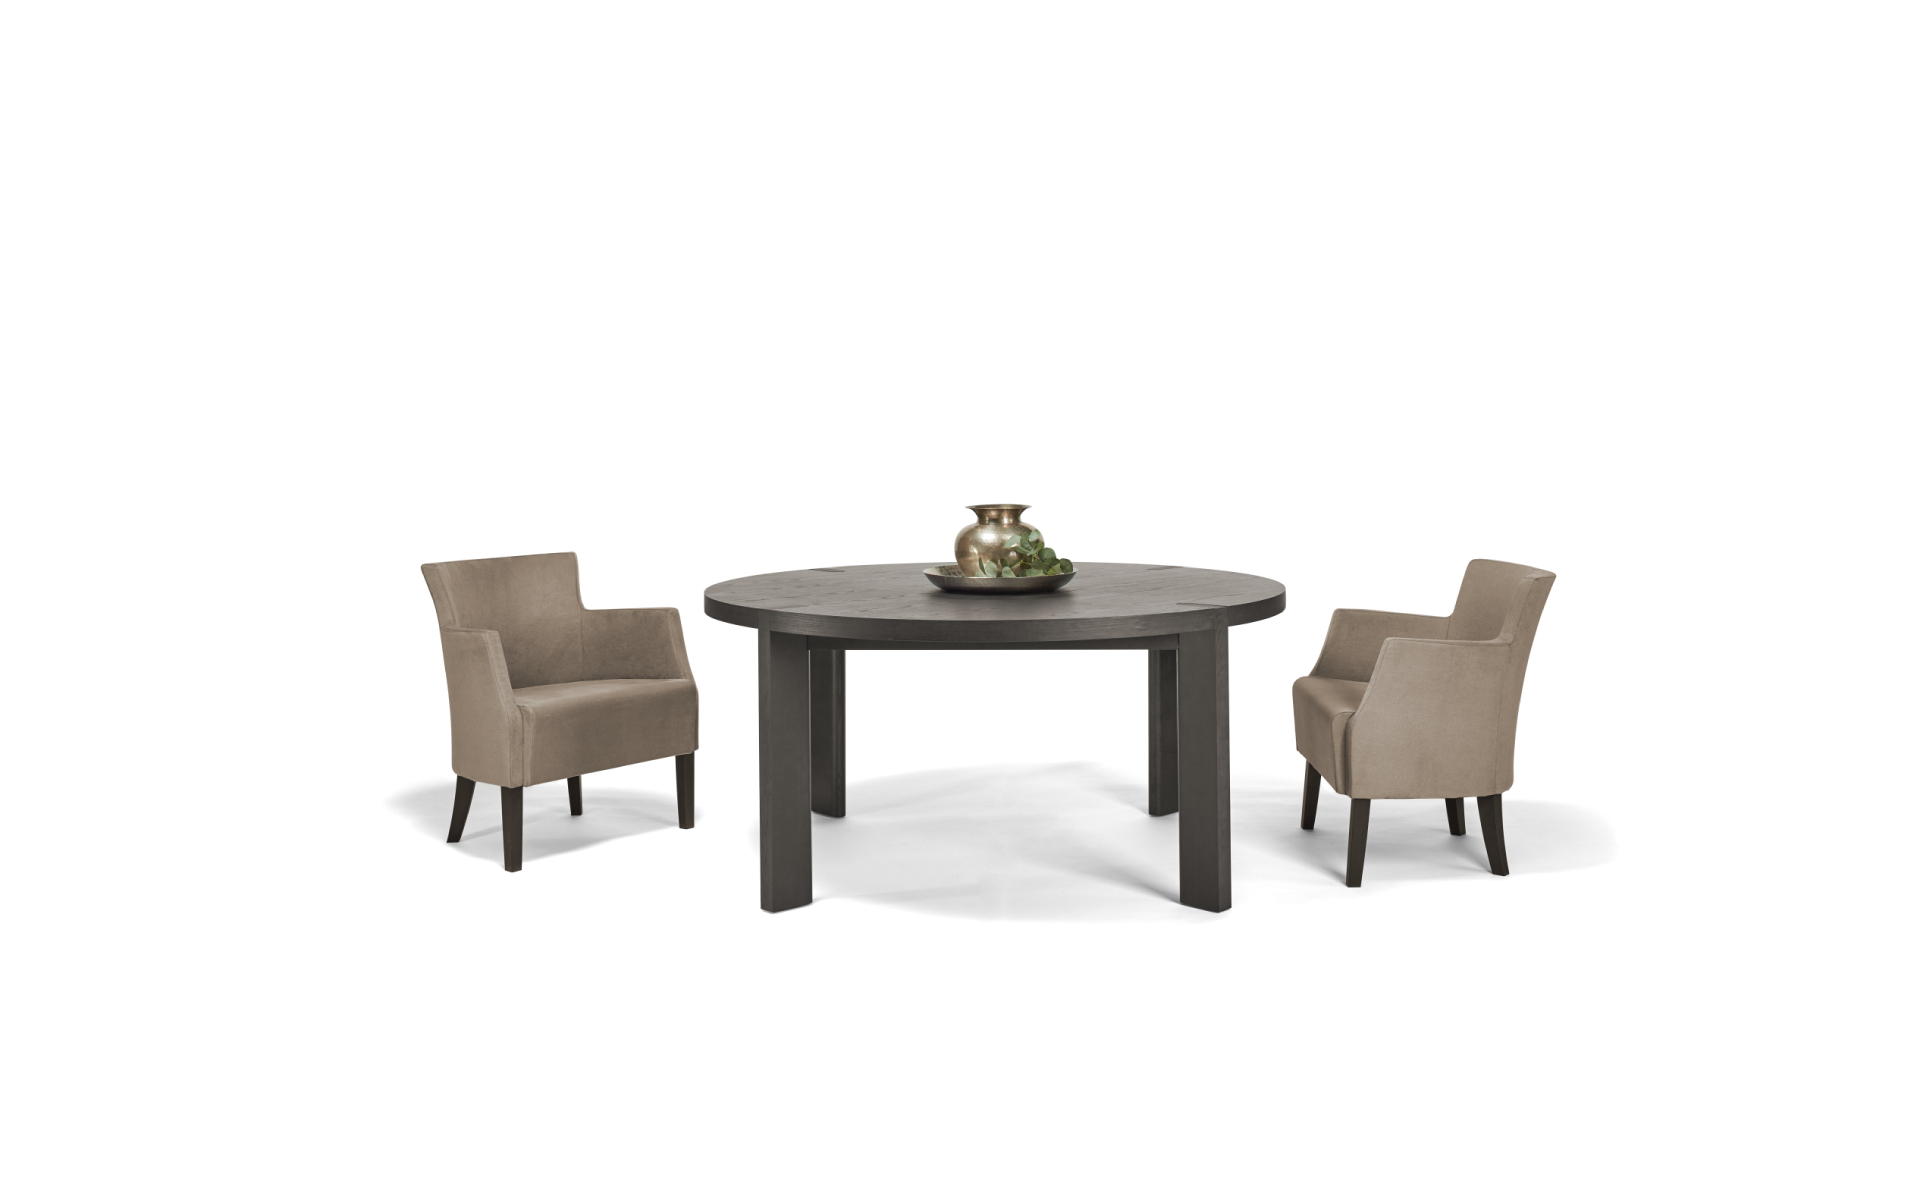 JS40 dining table